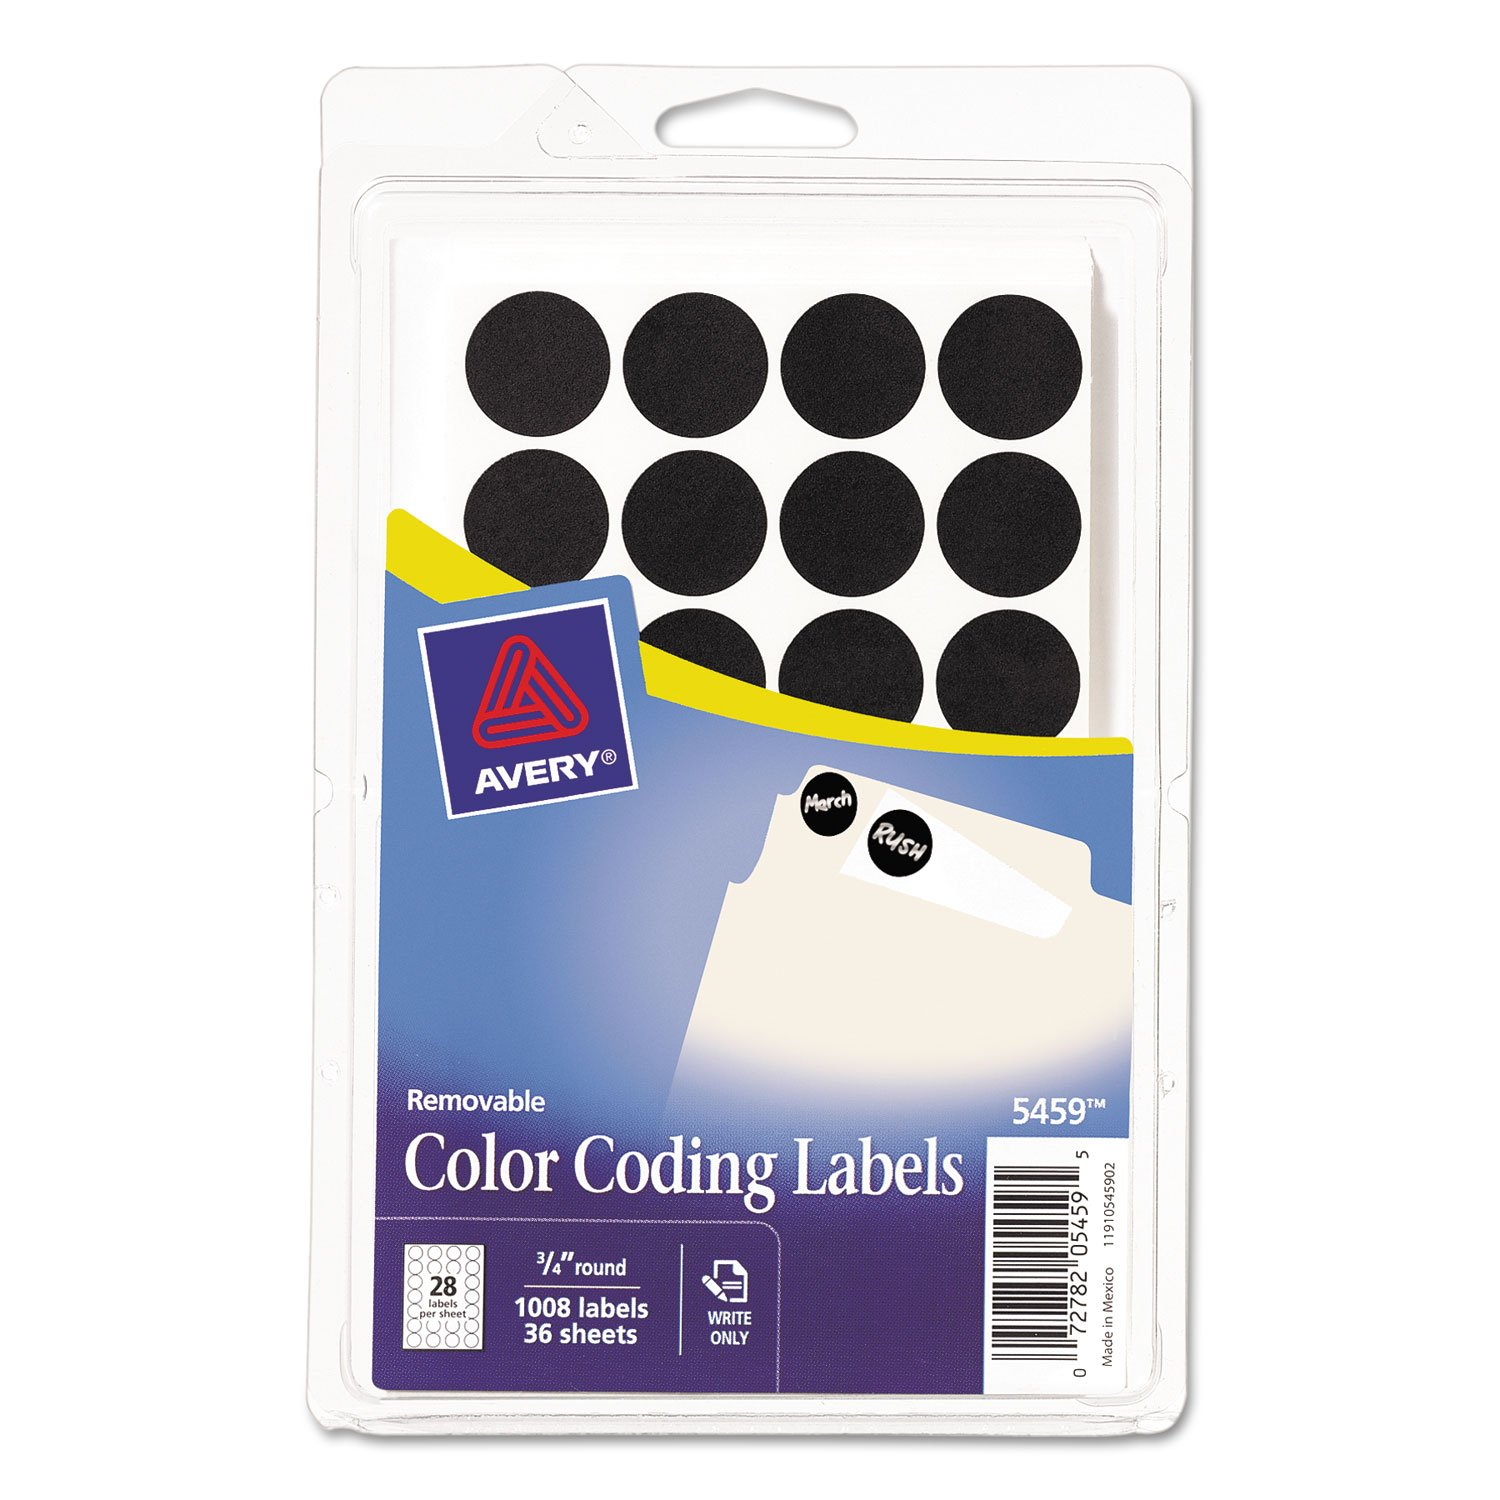 Avery 05459 Removable Round Labels, 3/4'' Diameter, Black, 1008 Labels/Pack by Avery (Image #1)